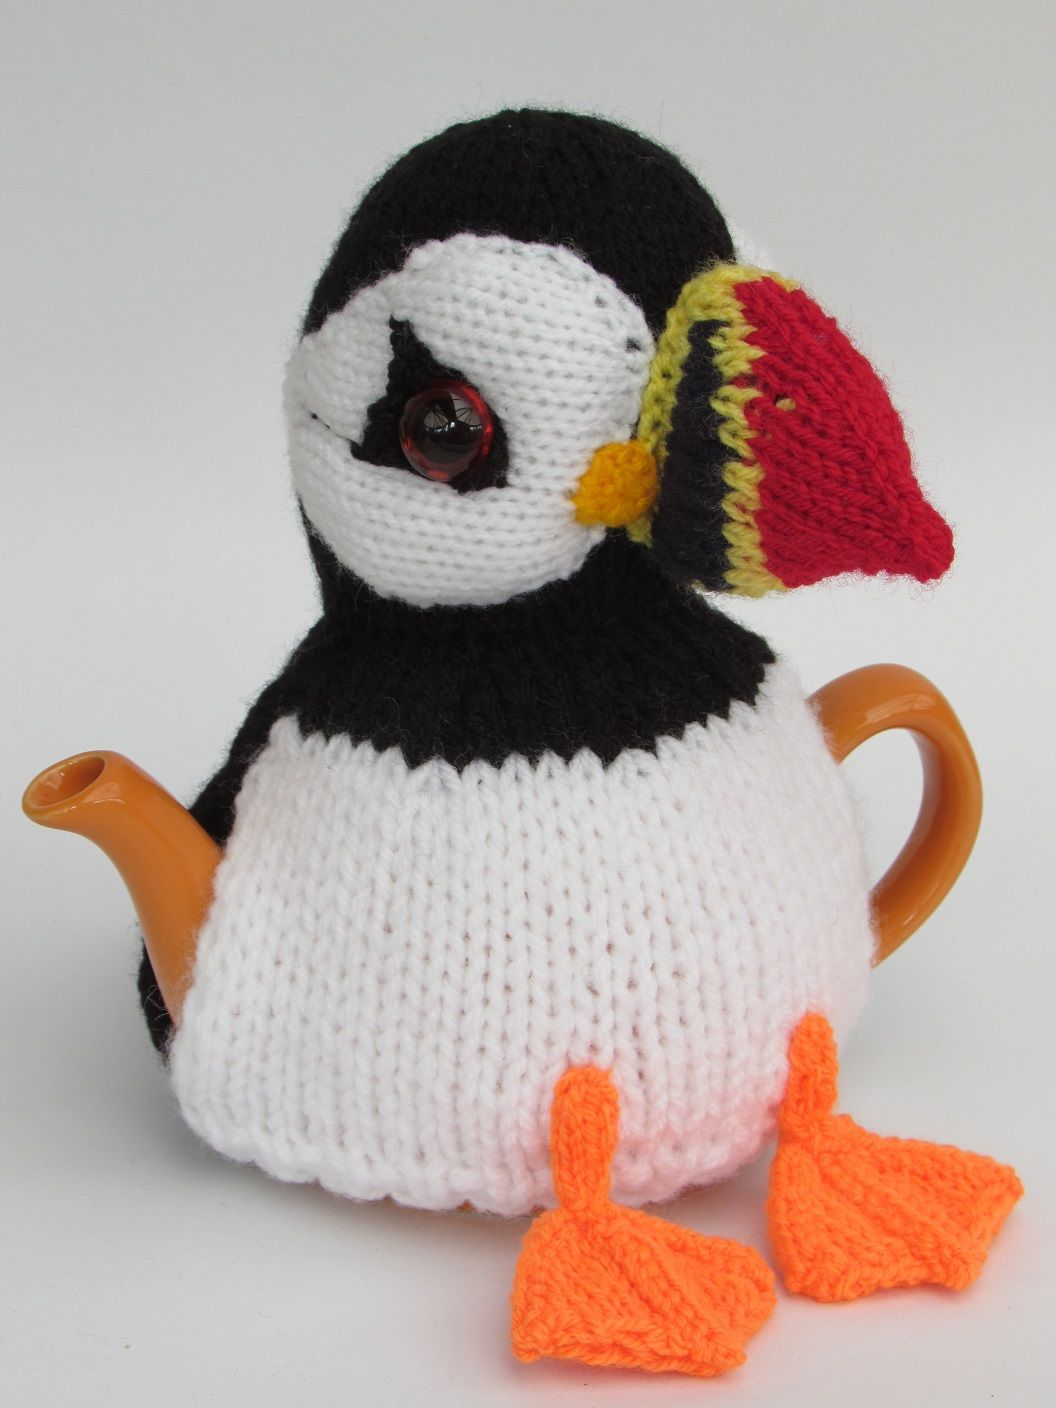 Puffin tea cosy knitting pattern | Bordado en hilo, Teteras y Hilo